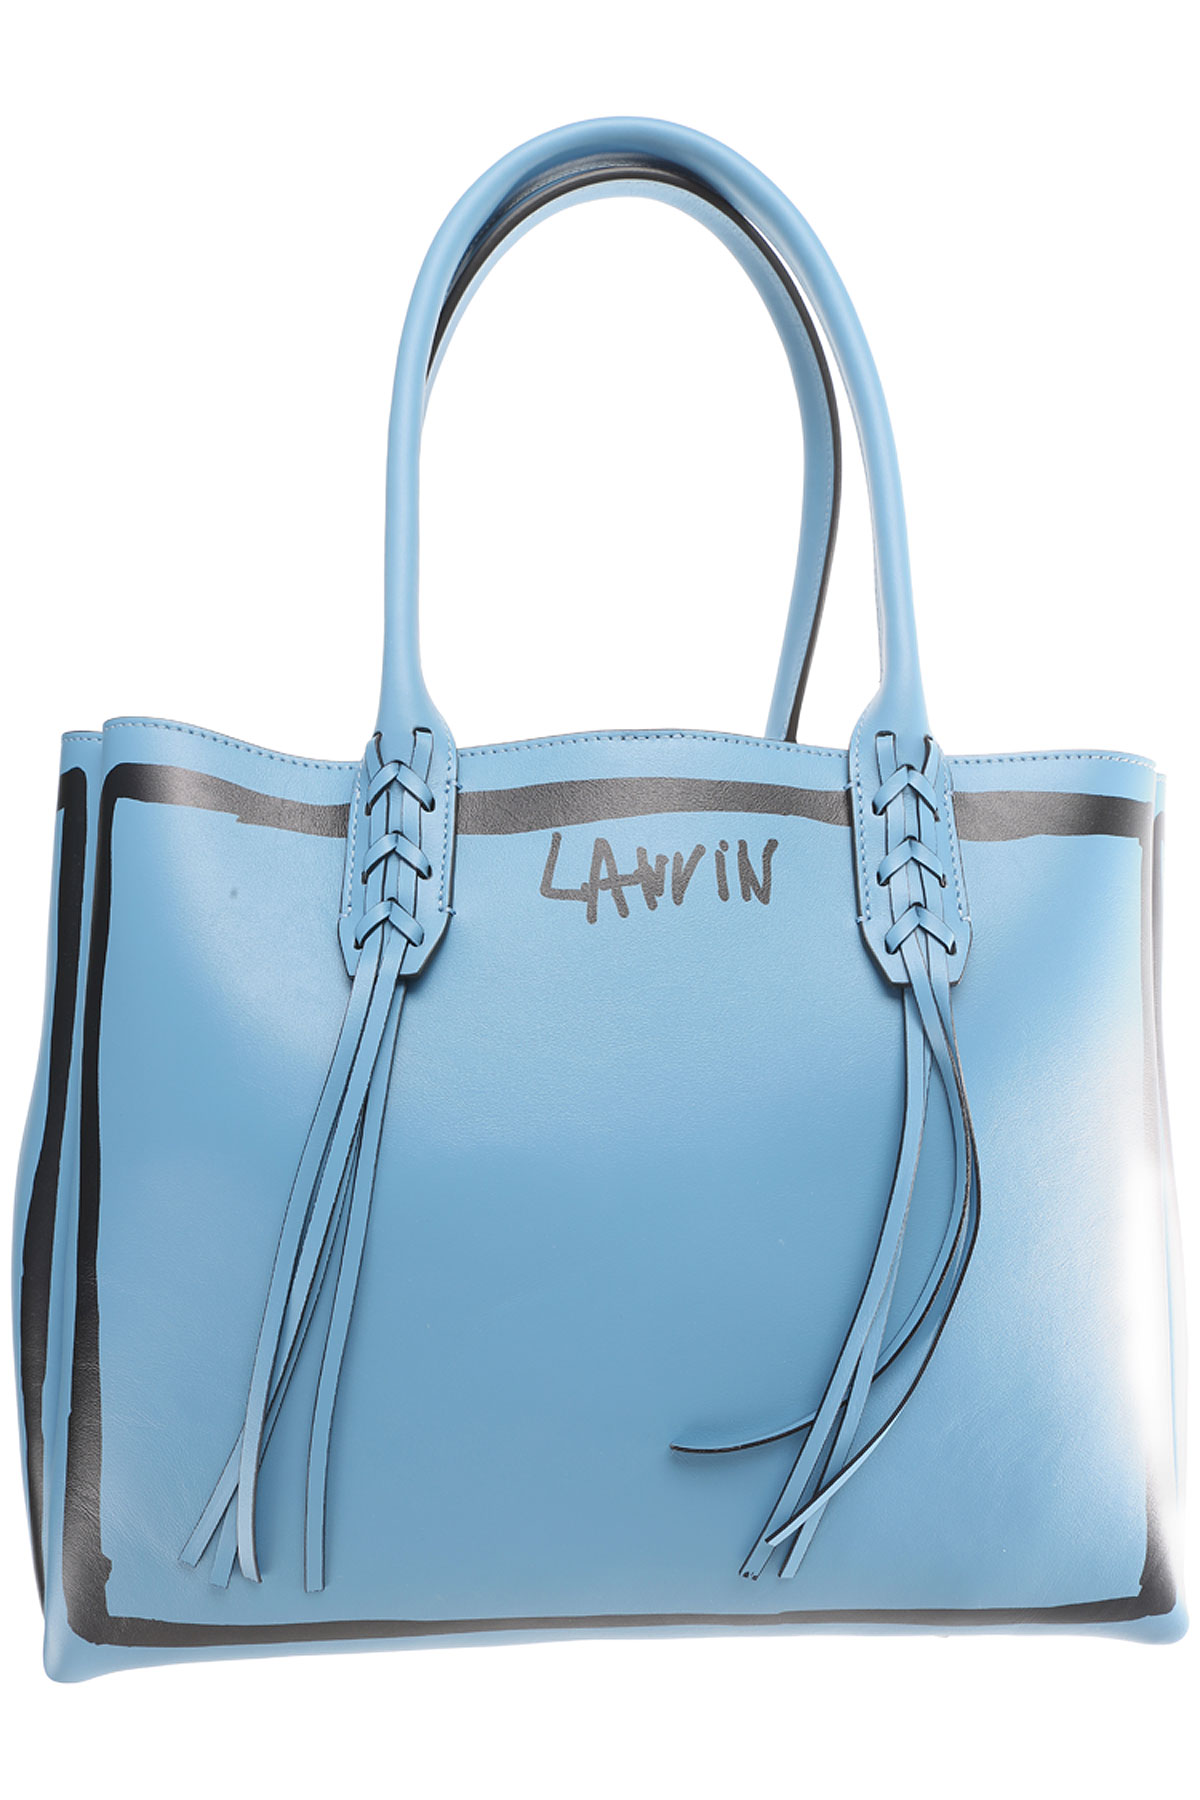 Lanvin Tote Bag On Sale in Outlet, Sky, Leather, 2017